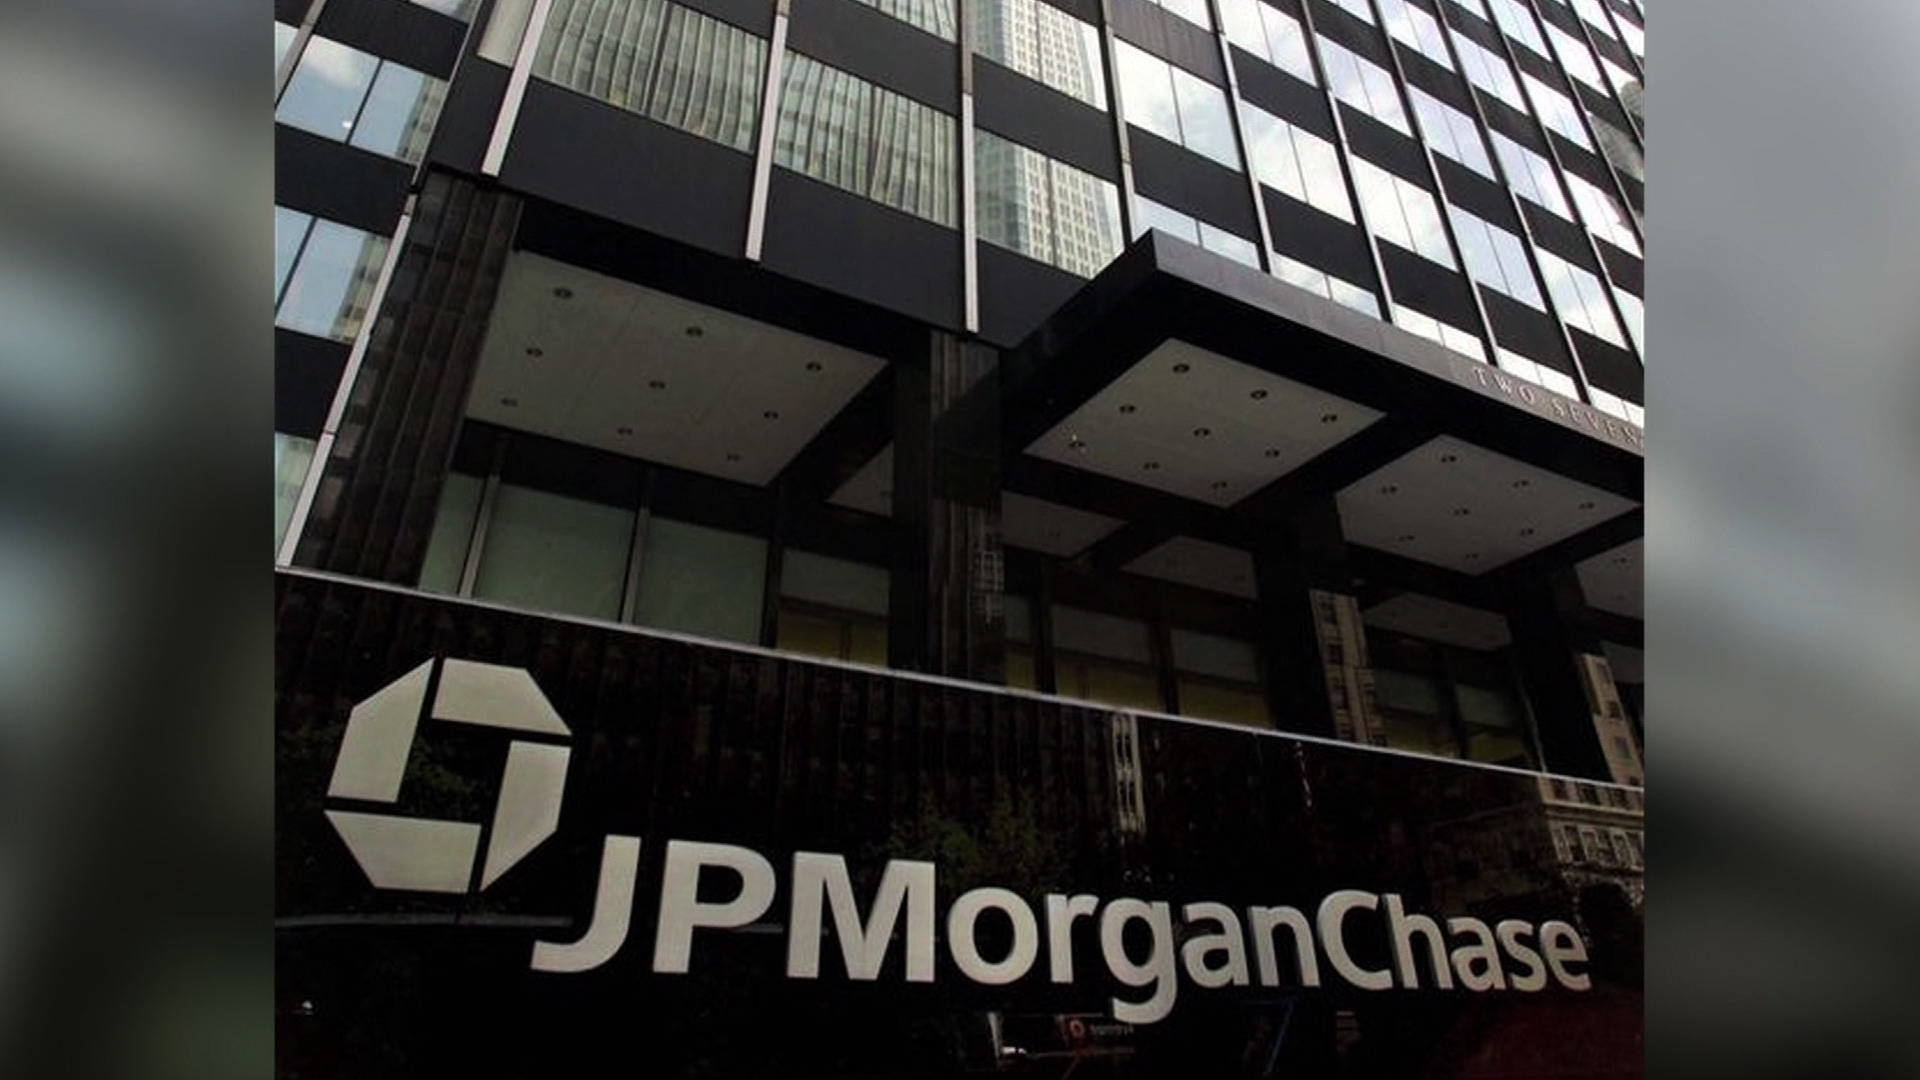 JPMorgan Chase to Pay $55M to Settle Housing Discrimination Lawsuit ...